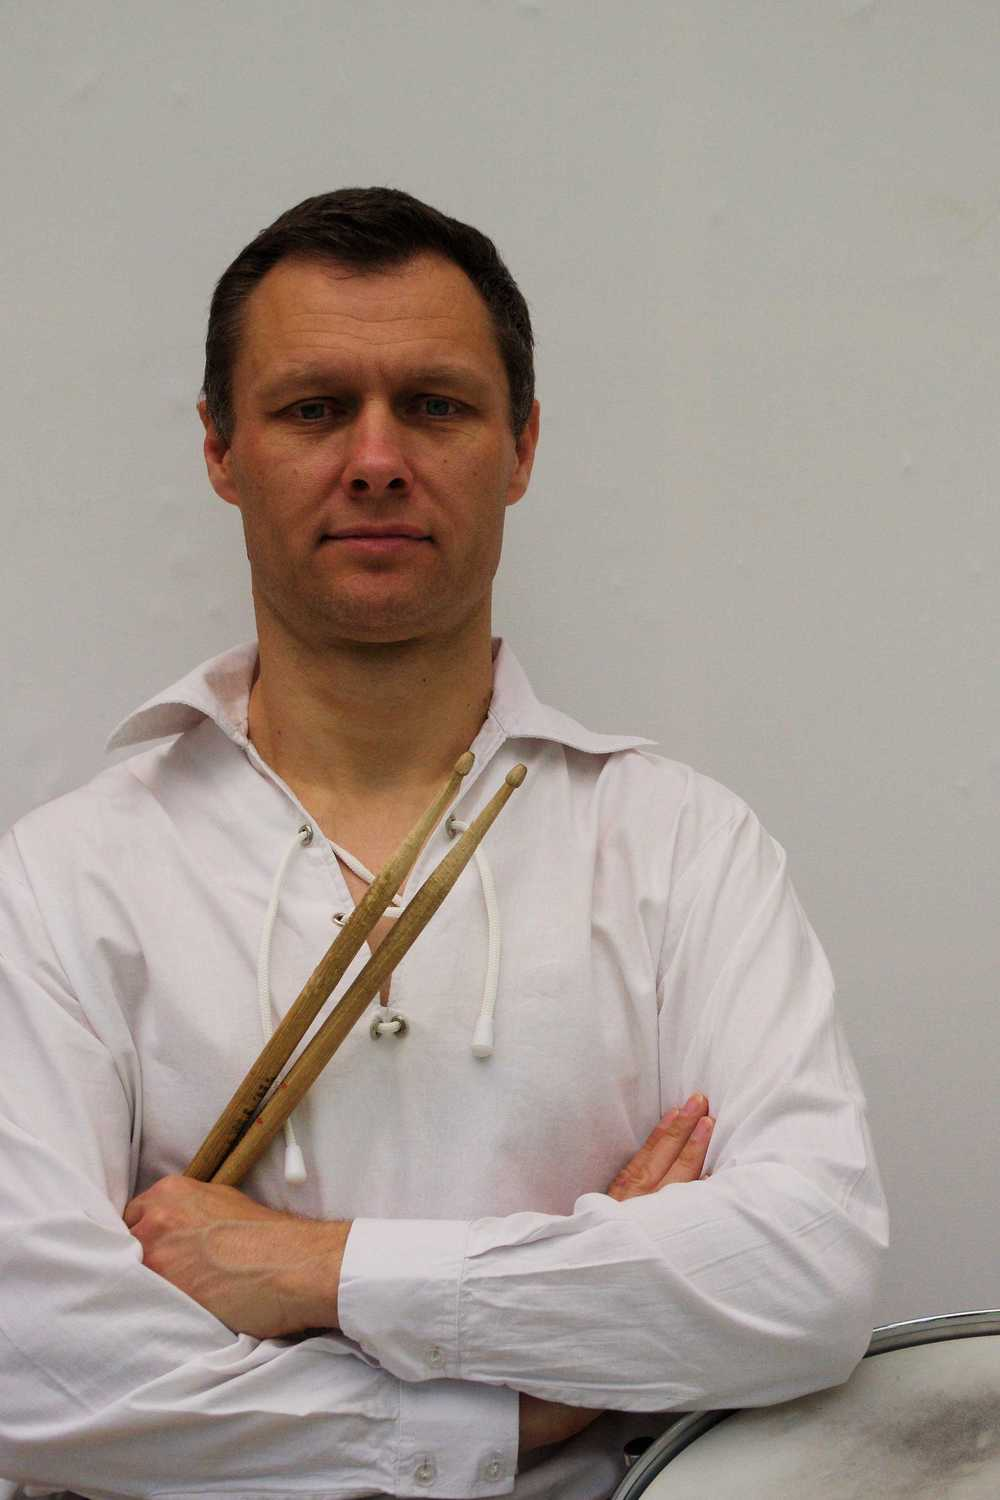 We do our utmost to avoid mistakes in the band - otherwise Simon gives us this look!